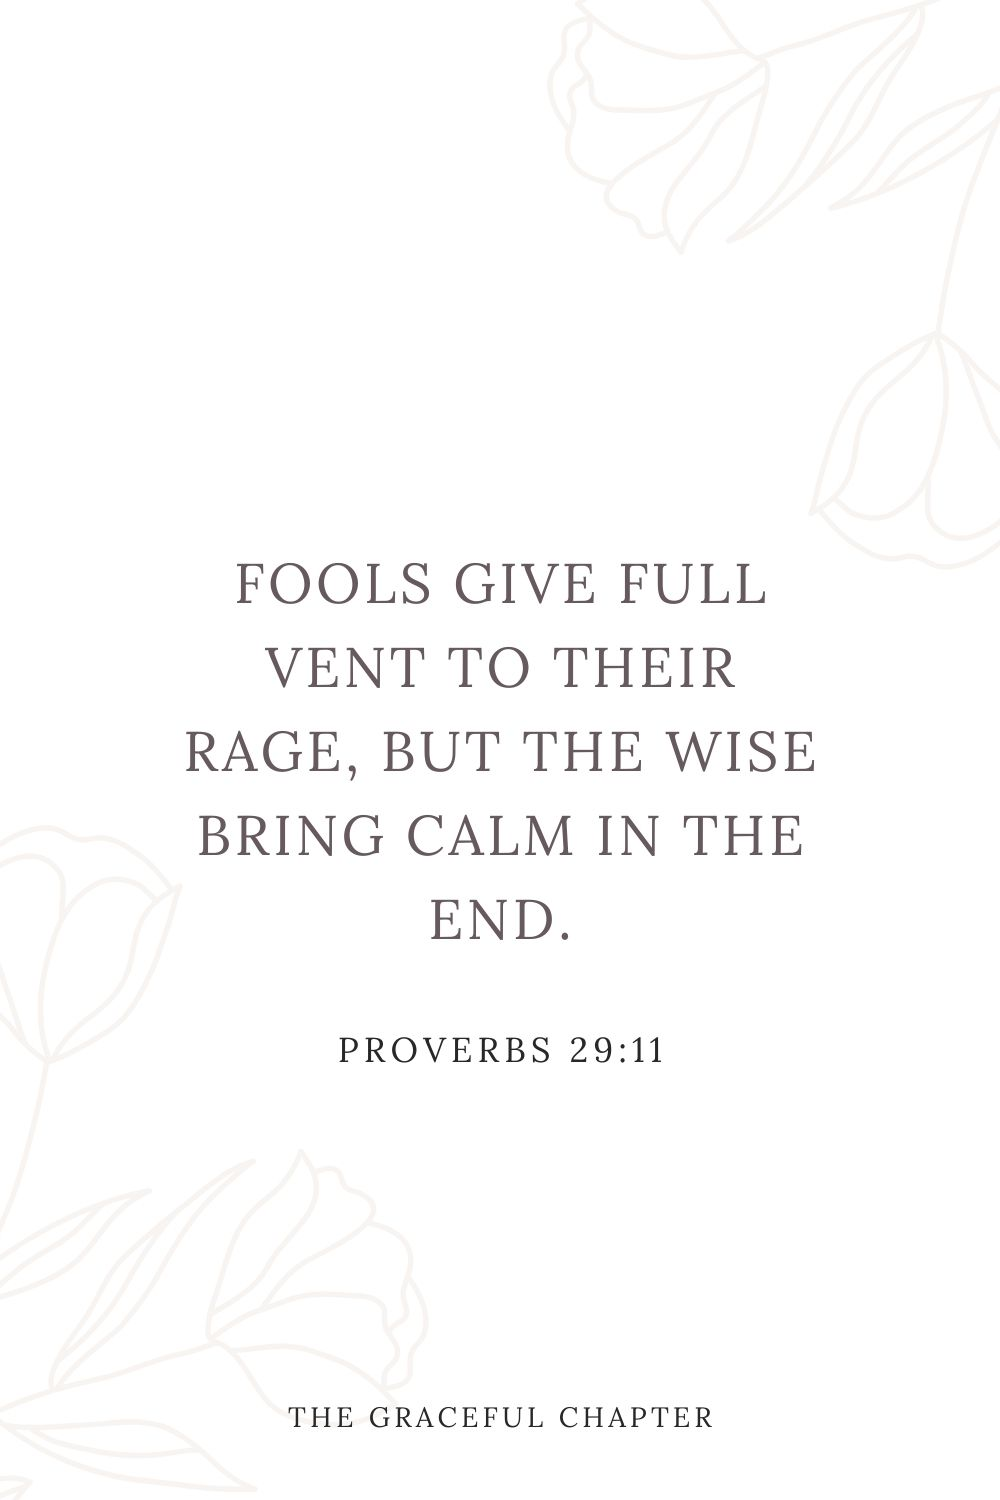 Fools give full vent to their rage, but the wise bring calm in the end. Proverbs 29:11